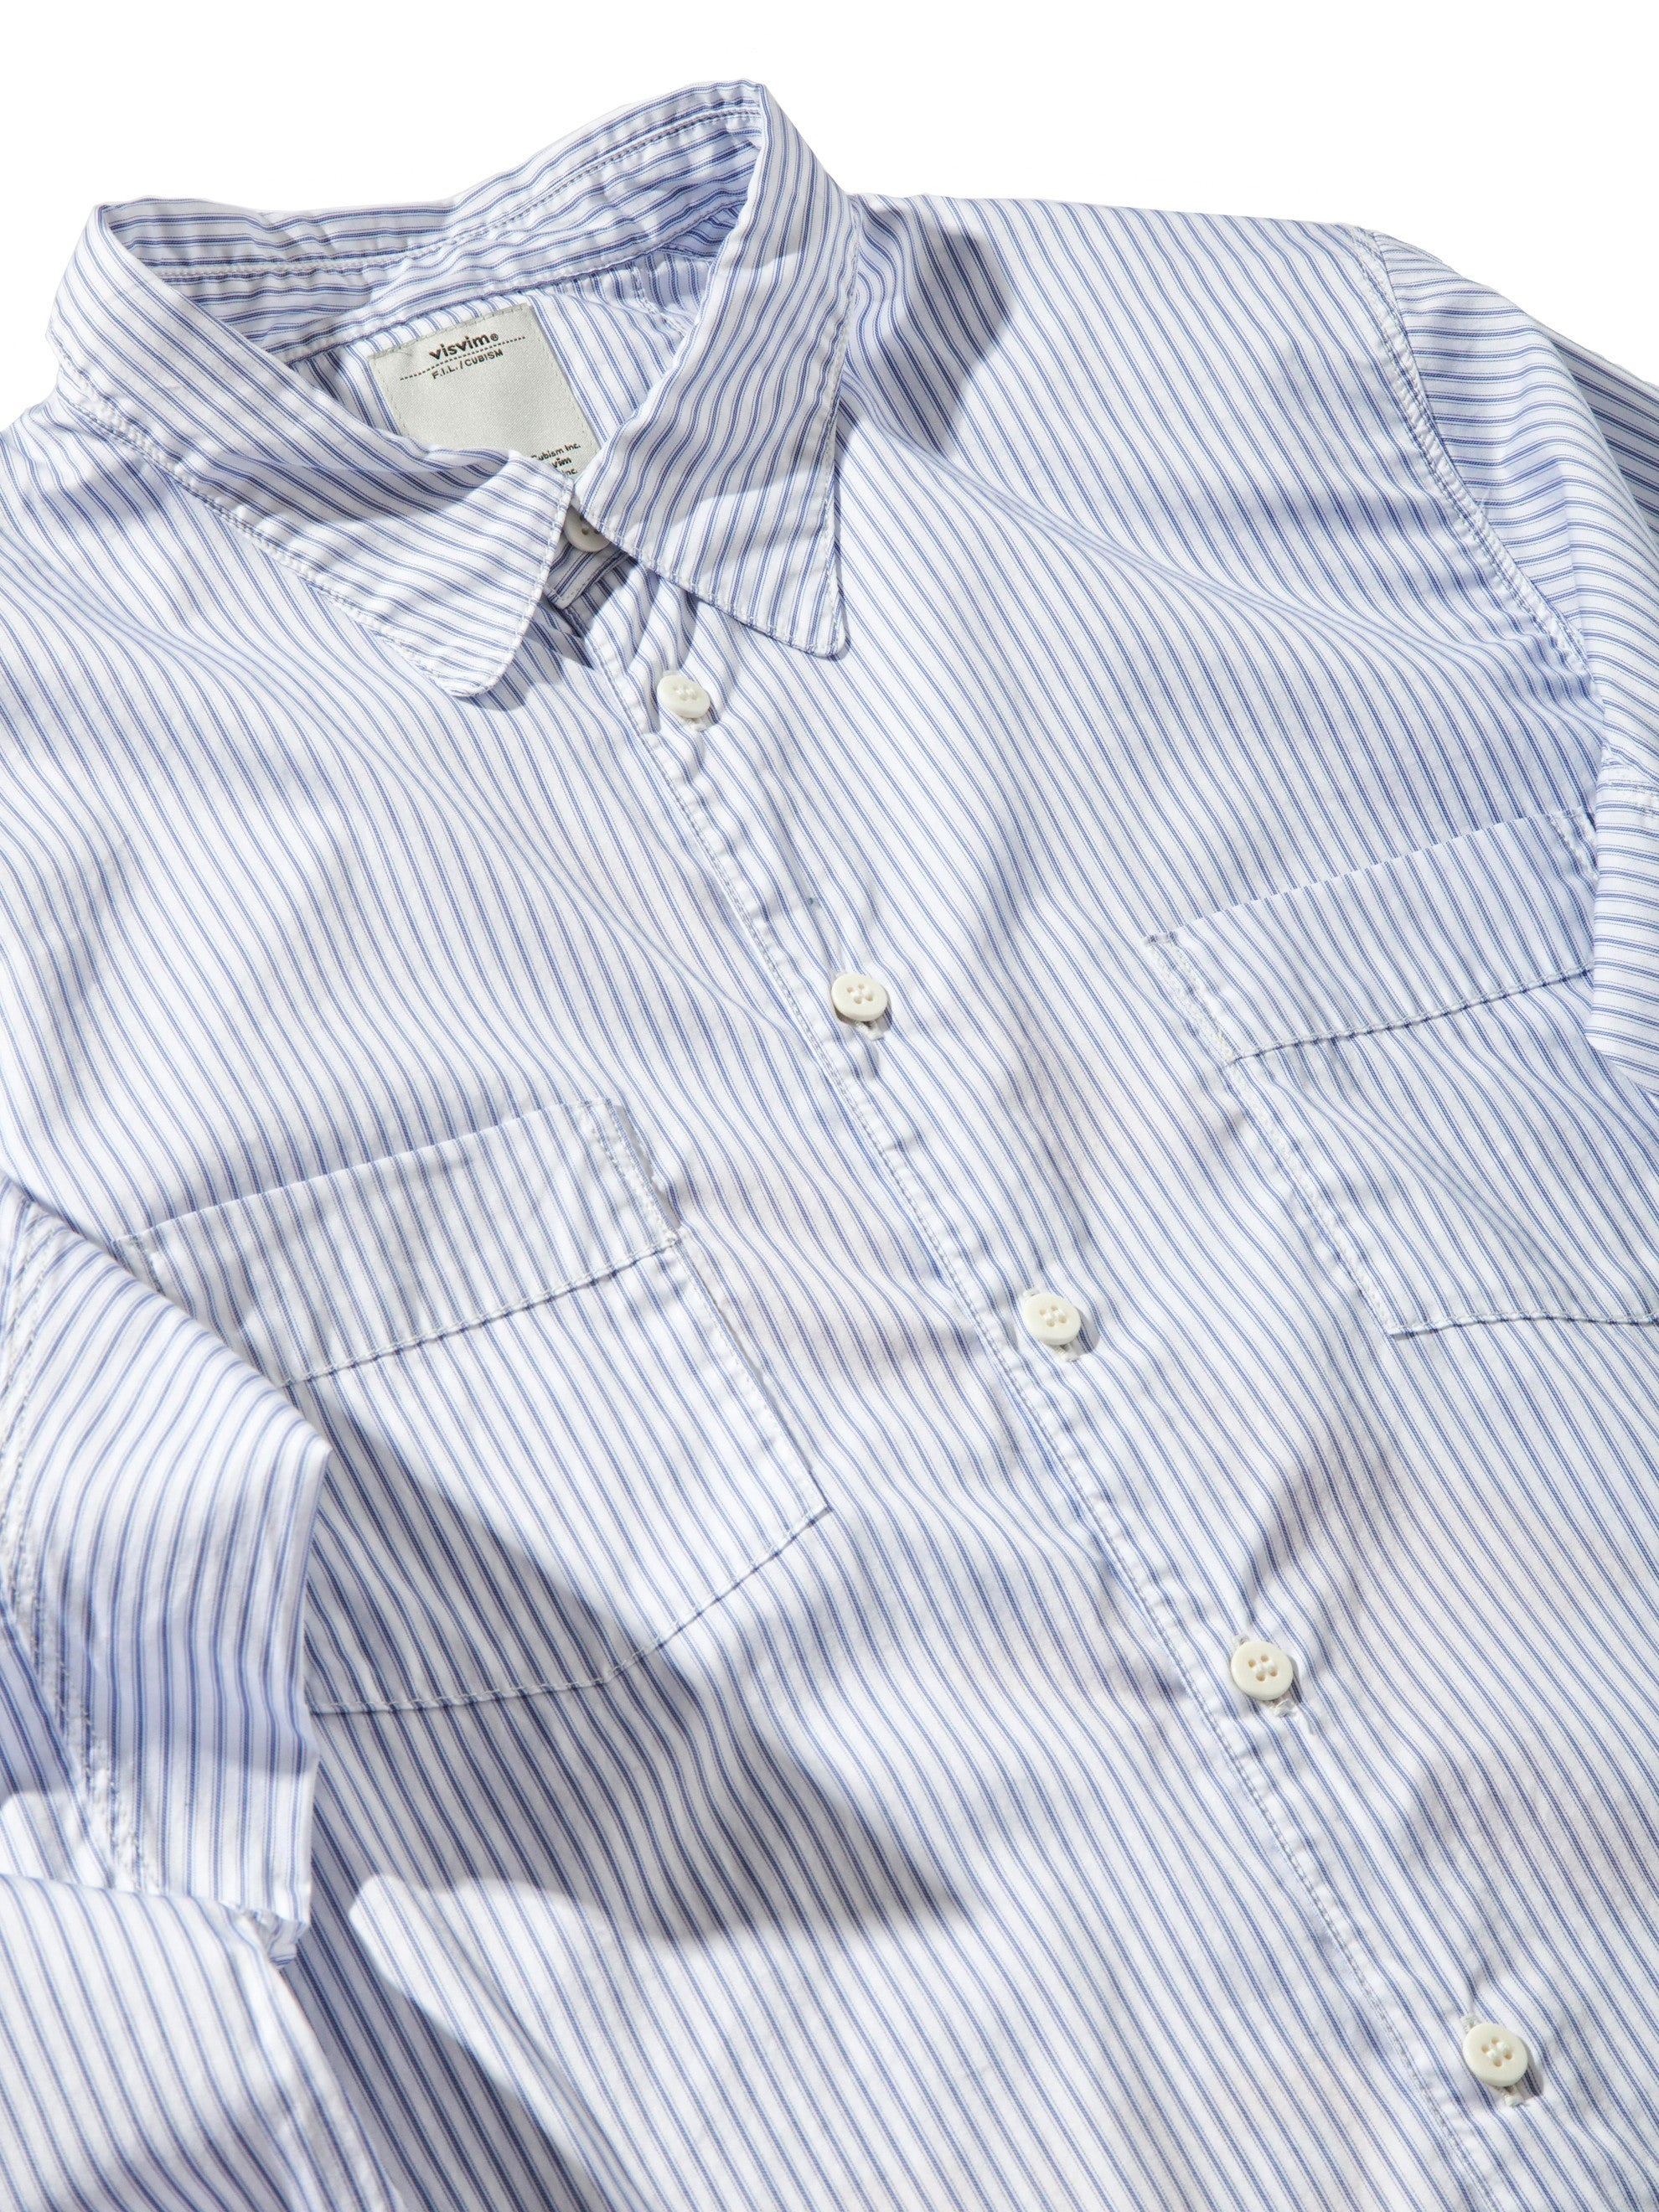 Navy Gekko Dress Shirt 9